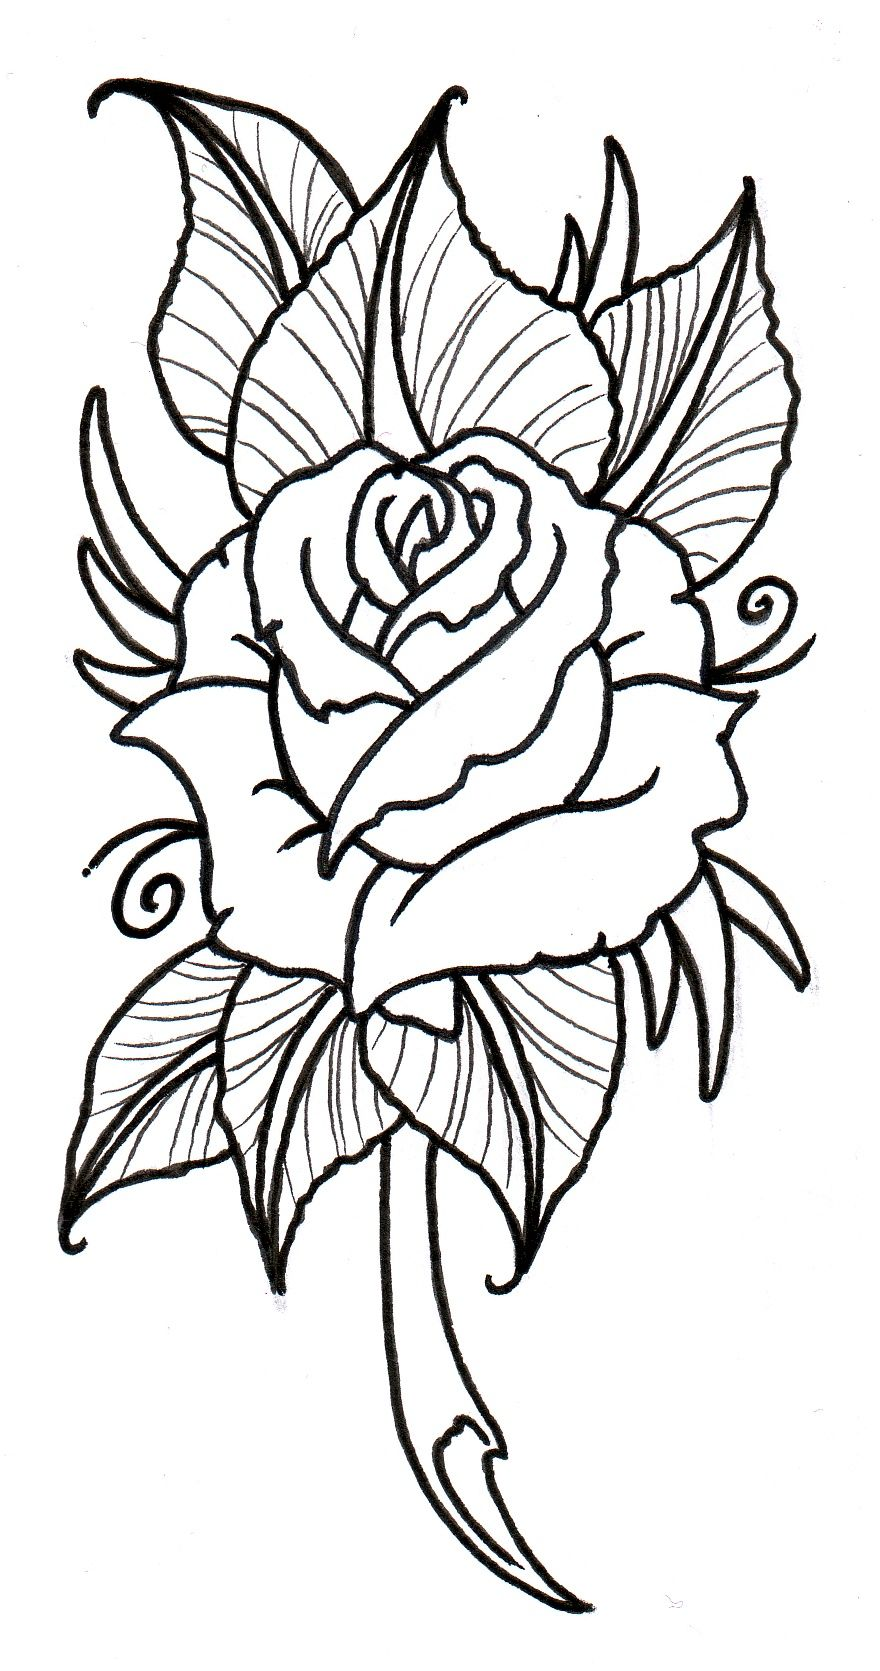 Neo Traditional Flower Outline Wiring Diagrams Png 52kb 100w Mosfet Power Amplifier Circuit Using Irfp240 Irfp9240 Rose By Vikingtattoo Deviantart Com On Rh Pinterest Tattoo Outlines Magnolia